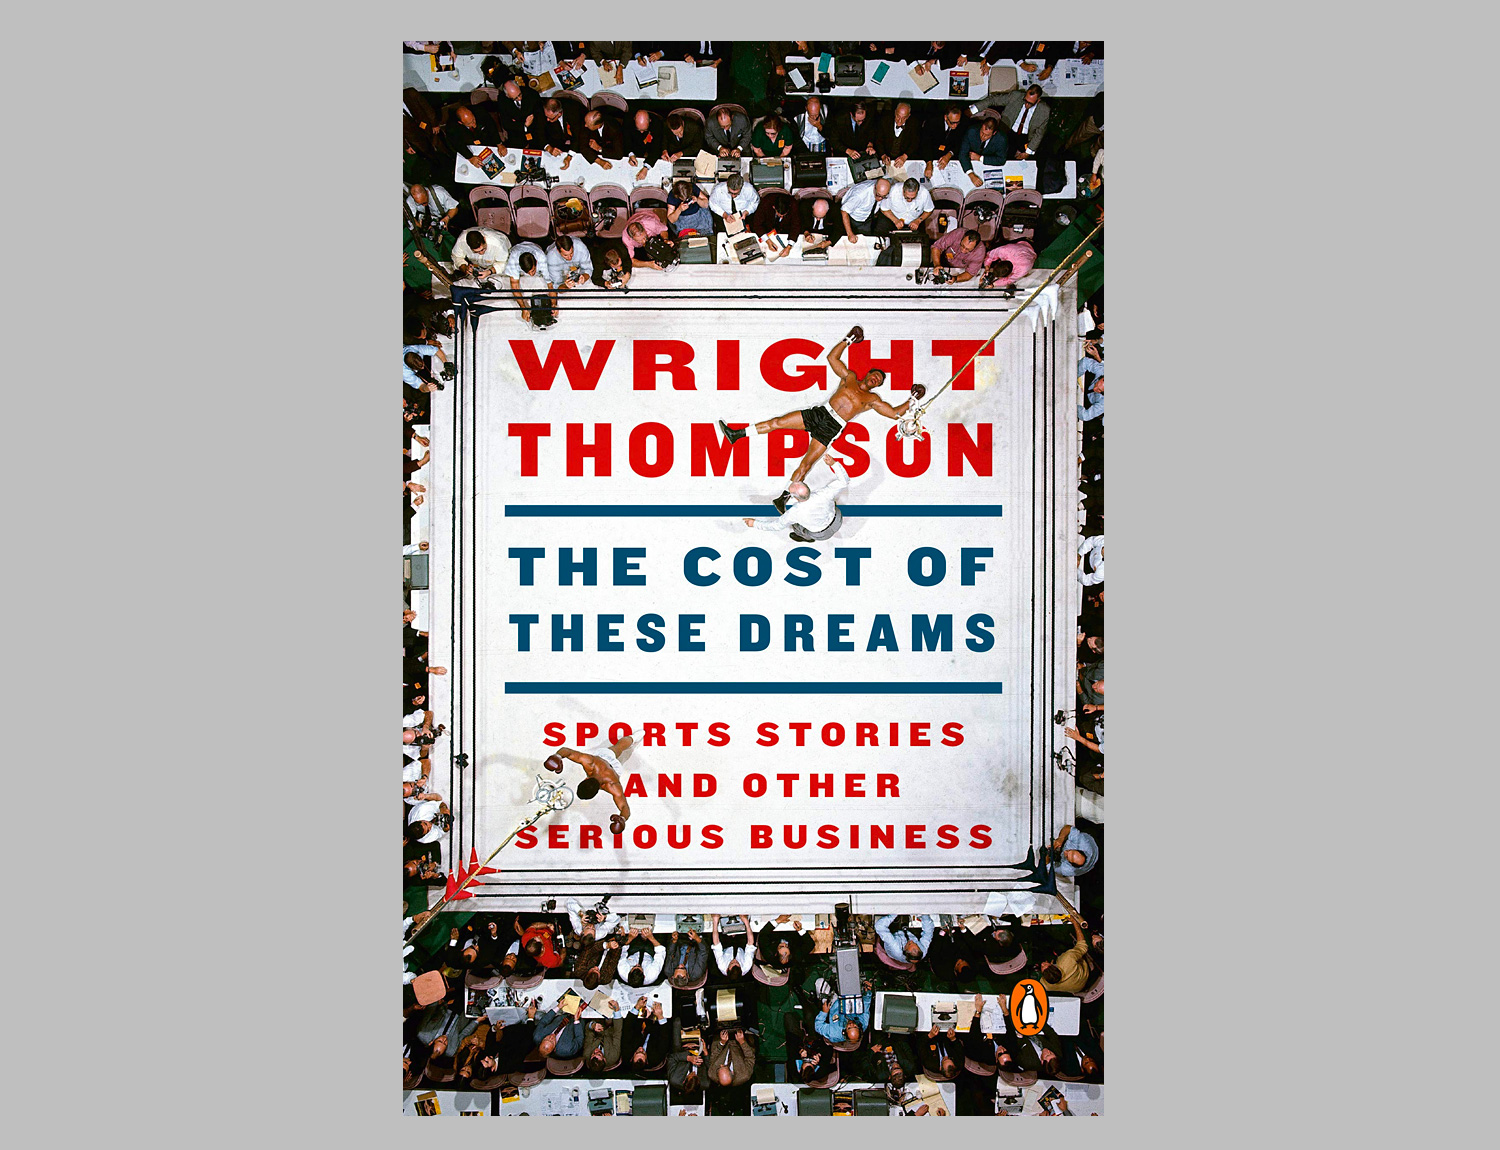 The Cost of These Dreams: Sports Stories and Other Serious Business at werd.com